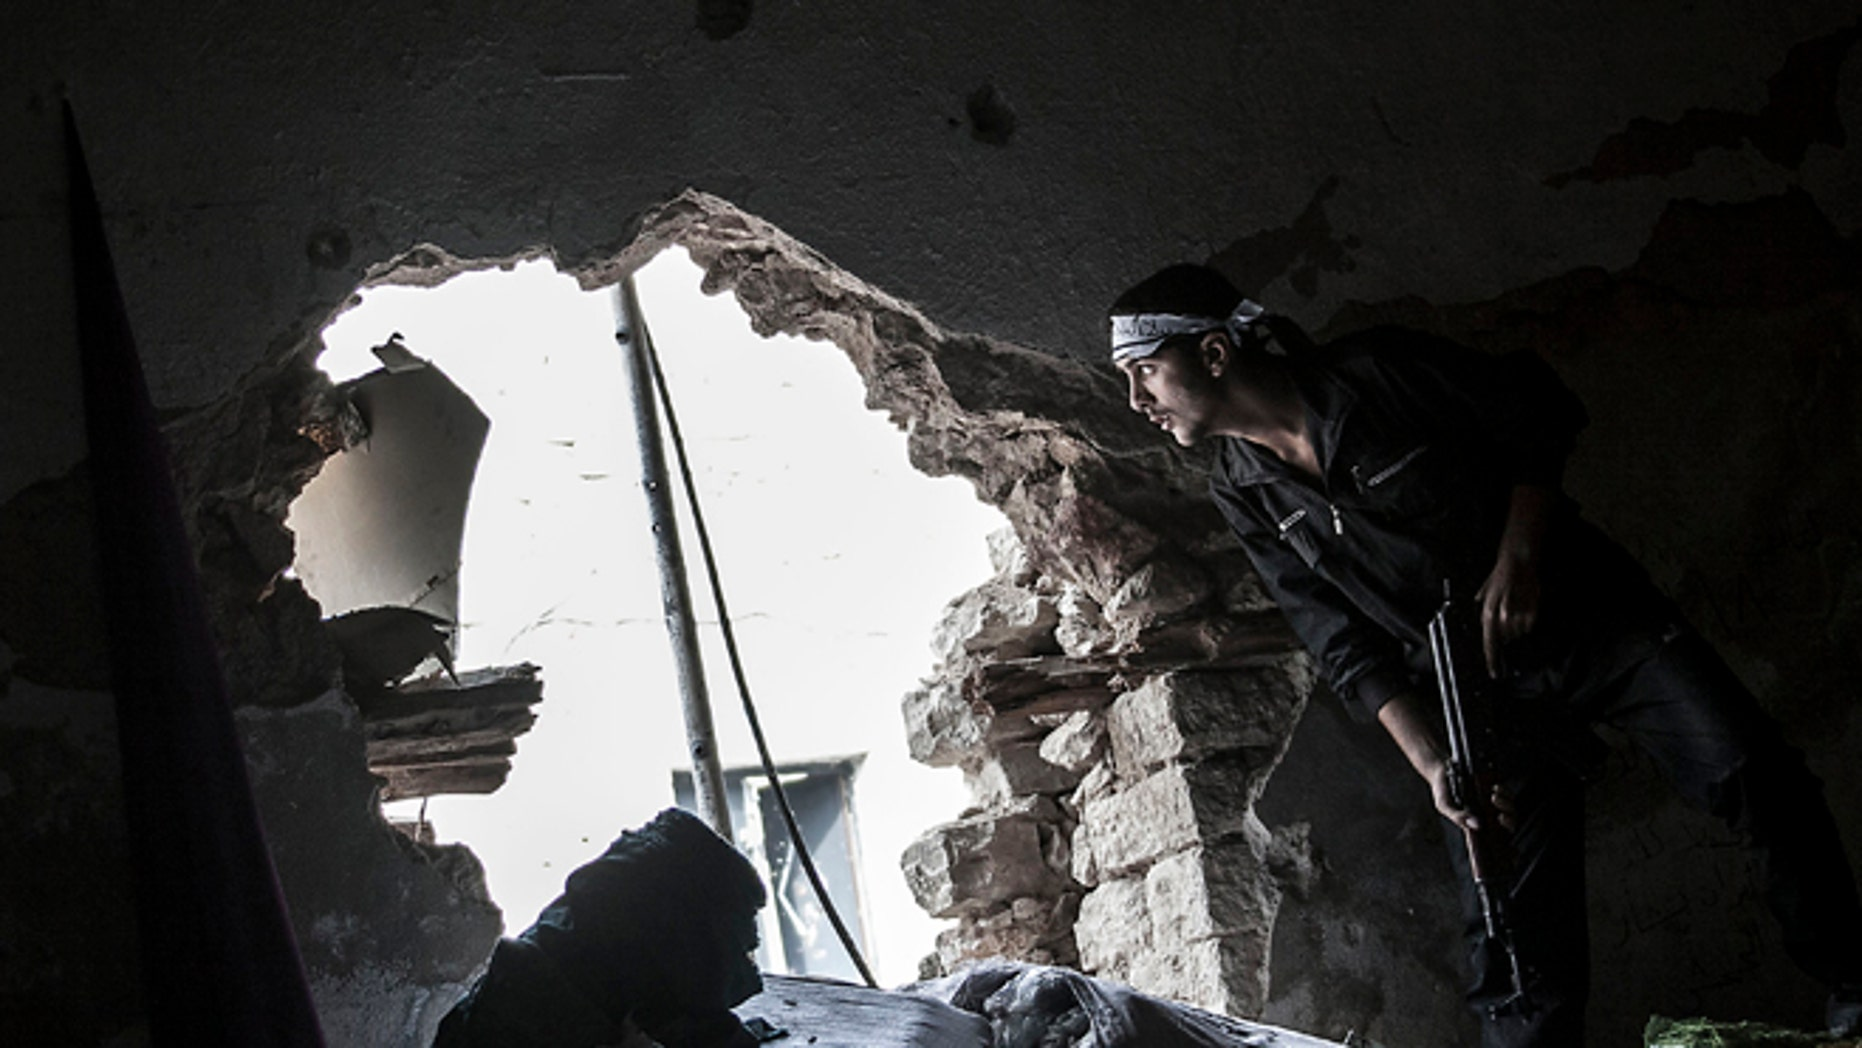 Oct. 24, 2012 photo: A Free Syrian Army fighter watches over an enemy position as rebel fighters belonging to the Liwa Al Tawhid group carry out a military operation at the Moaskar front line, one of the battlefields in the Karmal Jabl neighborhood, in Aleppo, Syria.